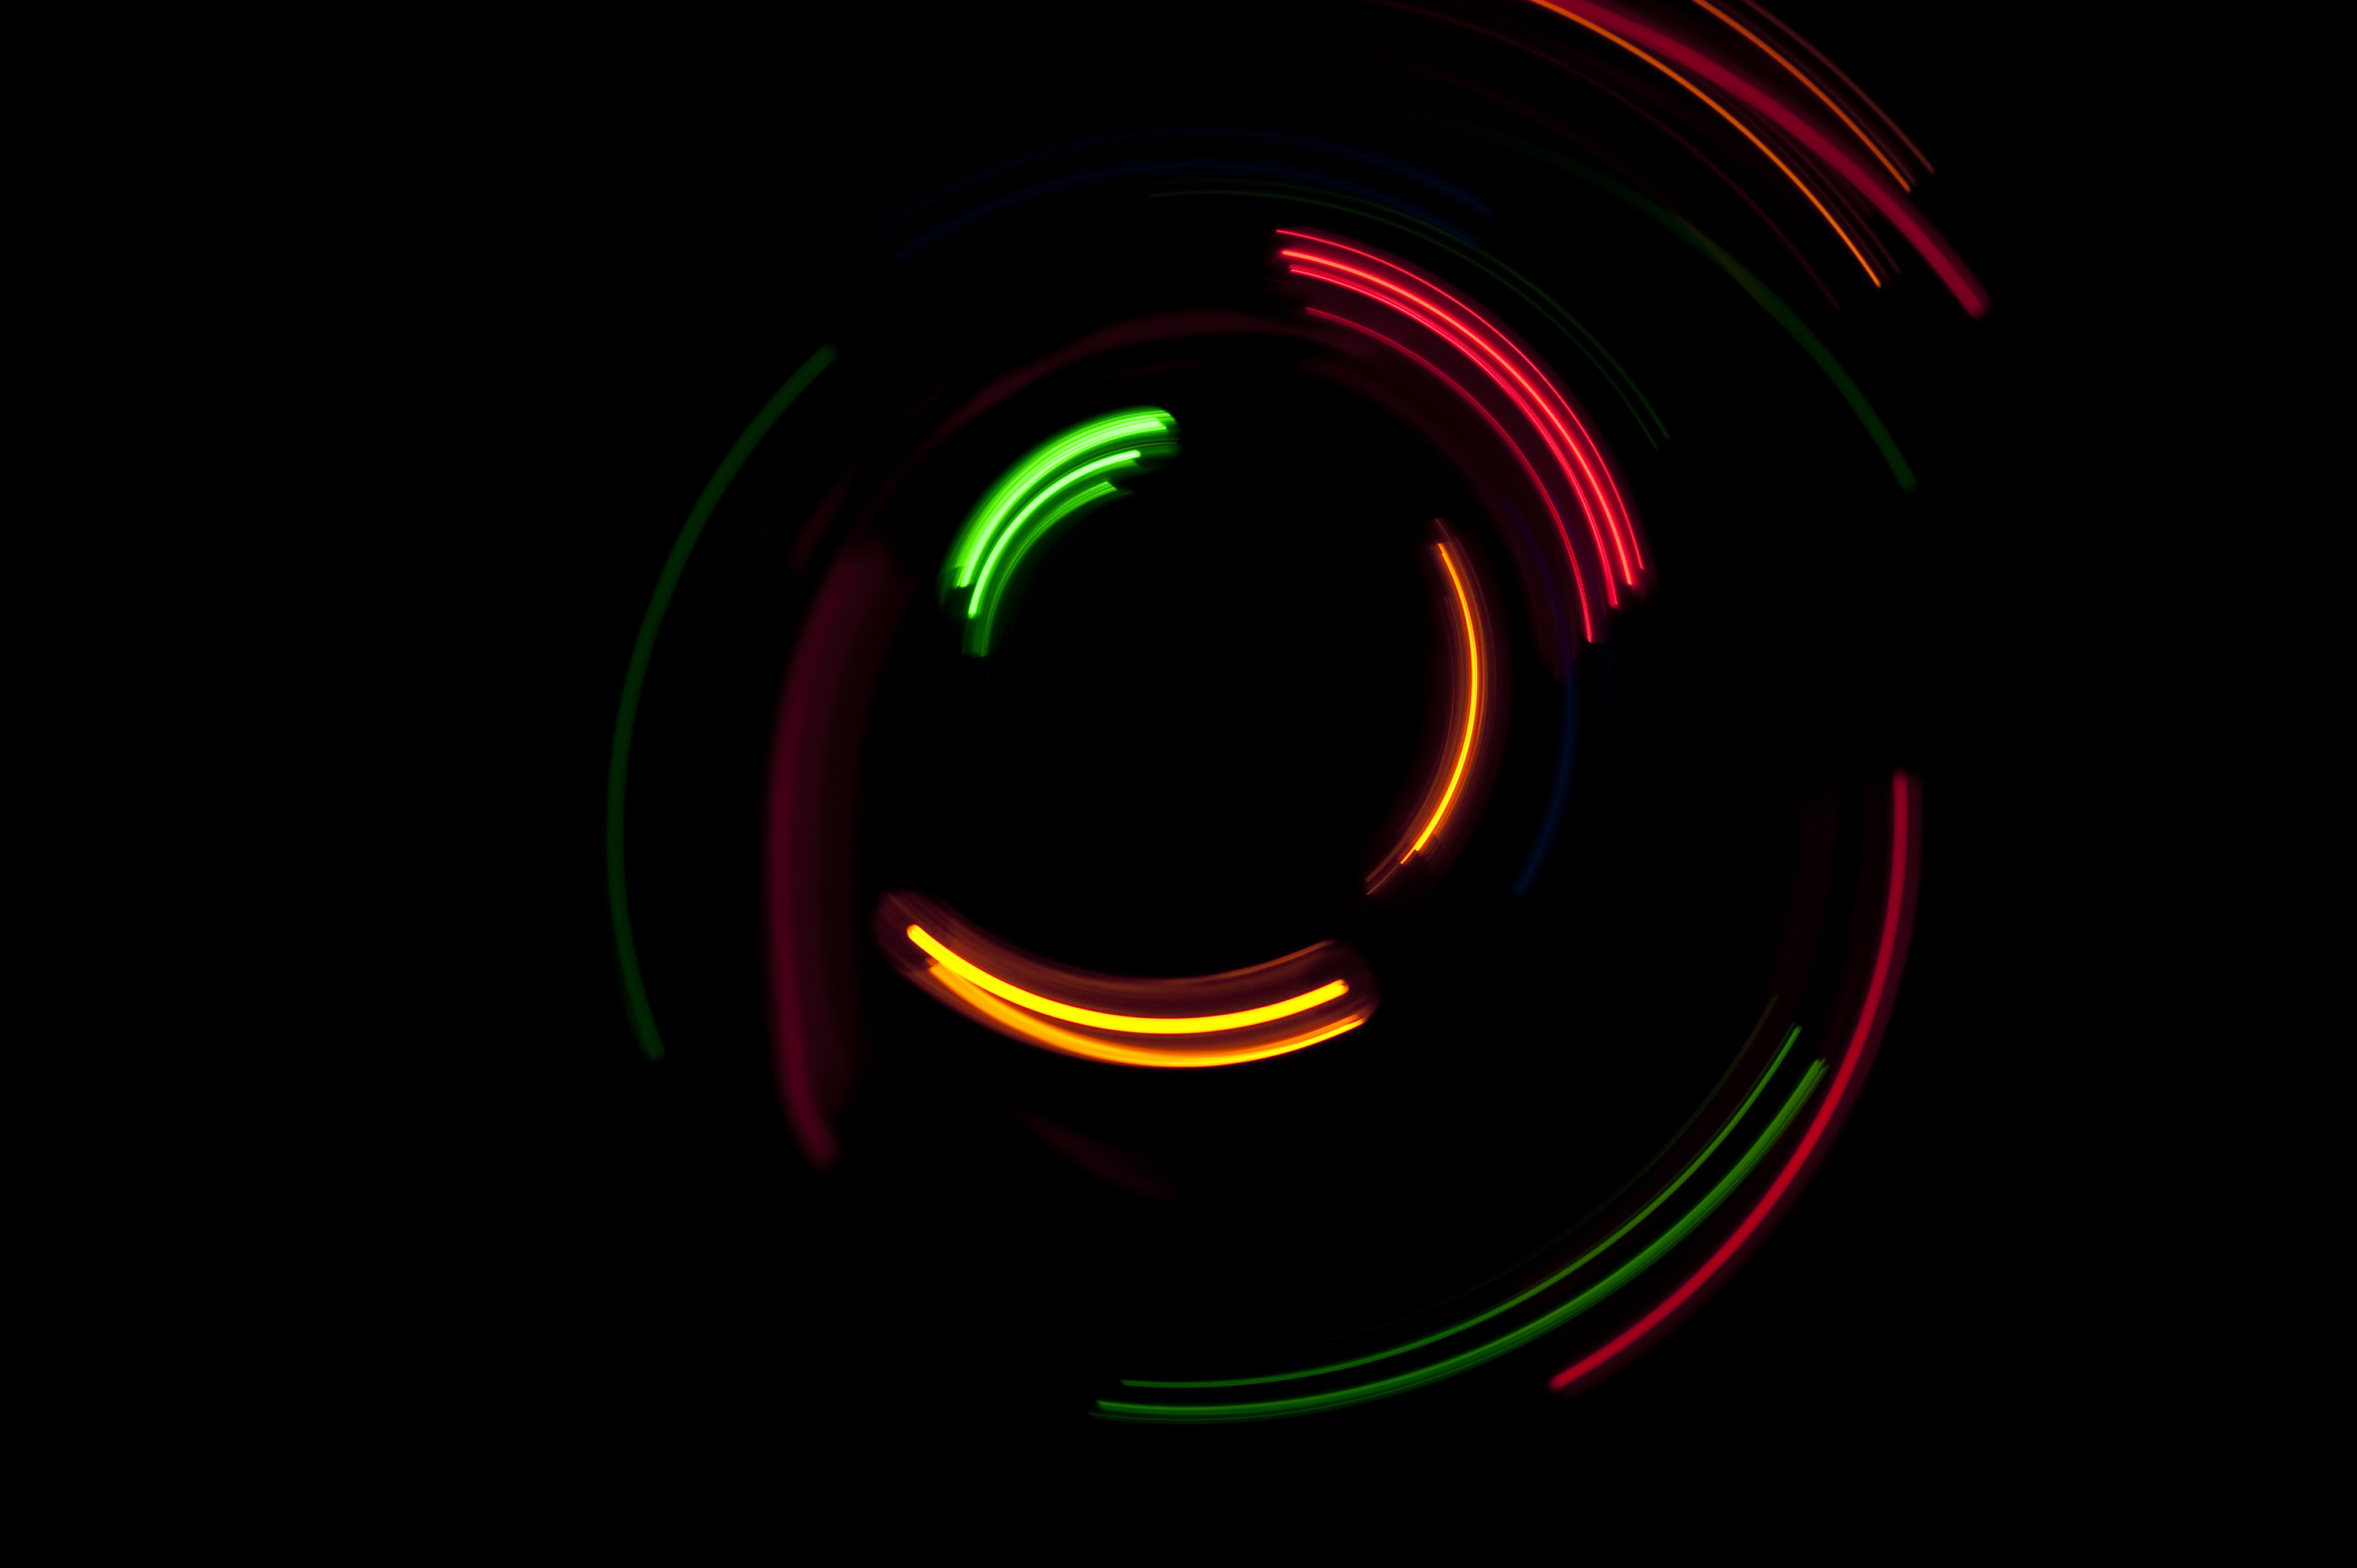 curved arcs of red, yellow, and green light formed around a central point